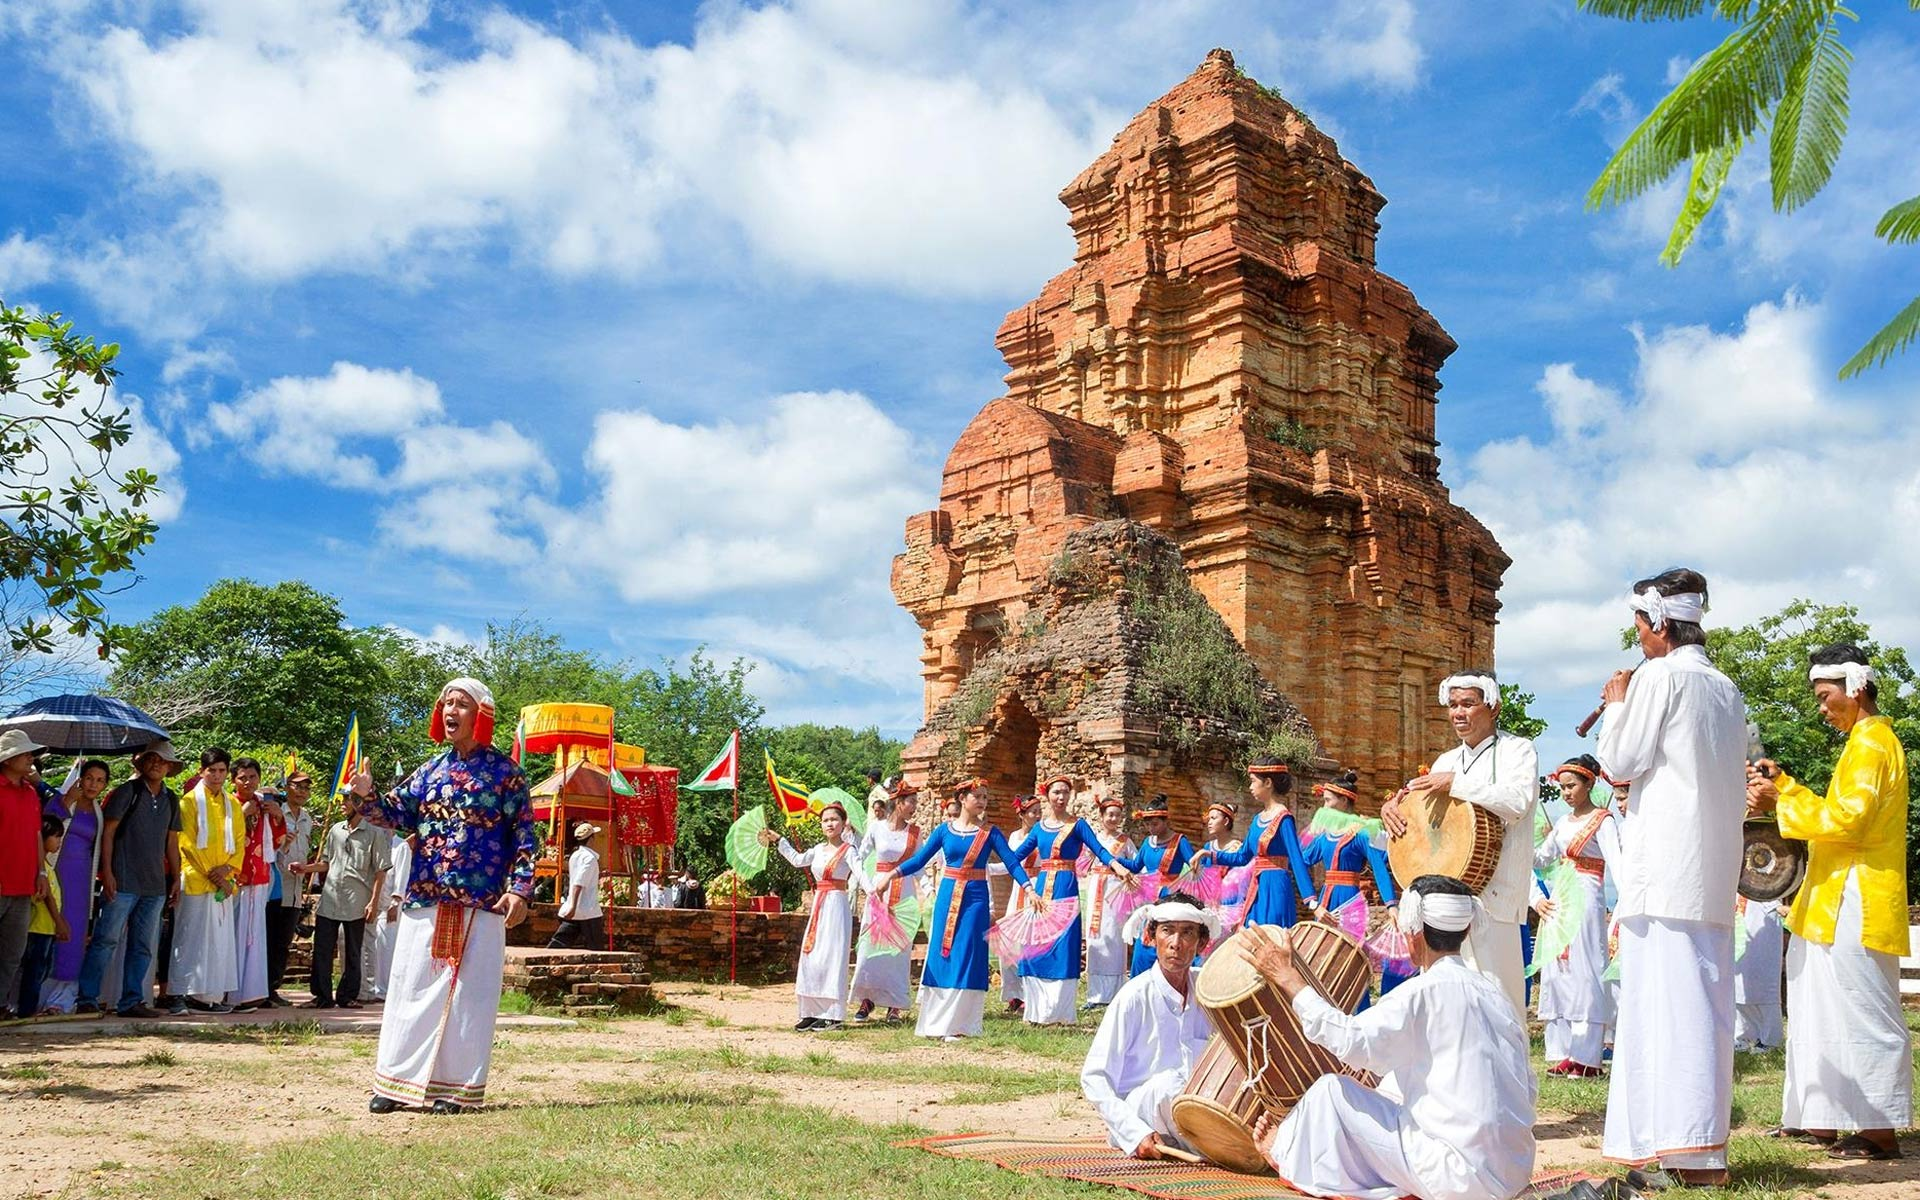 Kate Festival - the most unique festival of the Cham community in Ninh Thuan Province